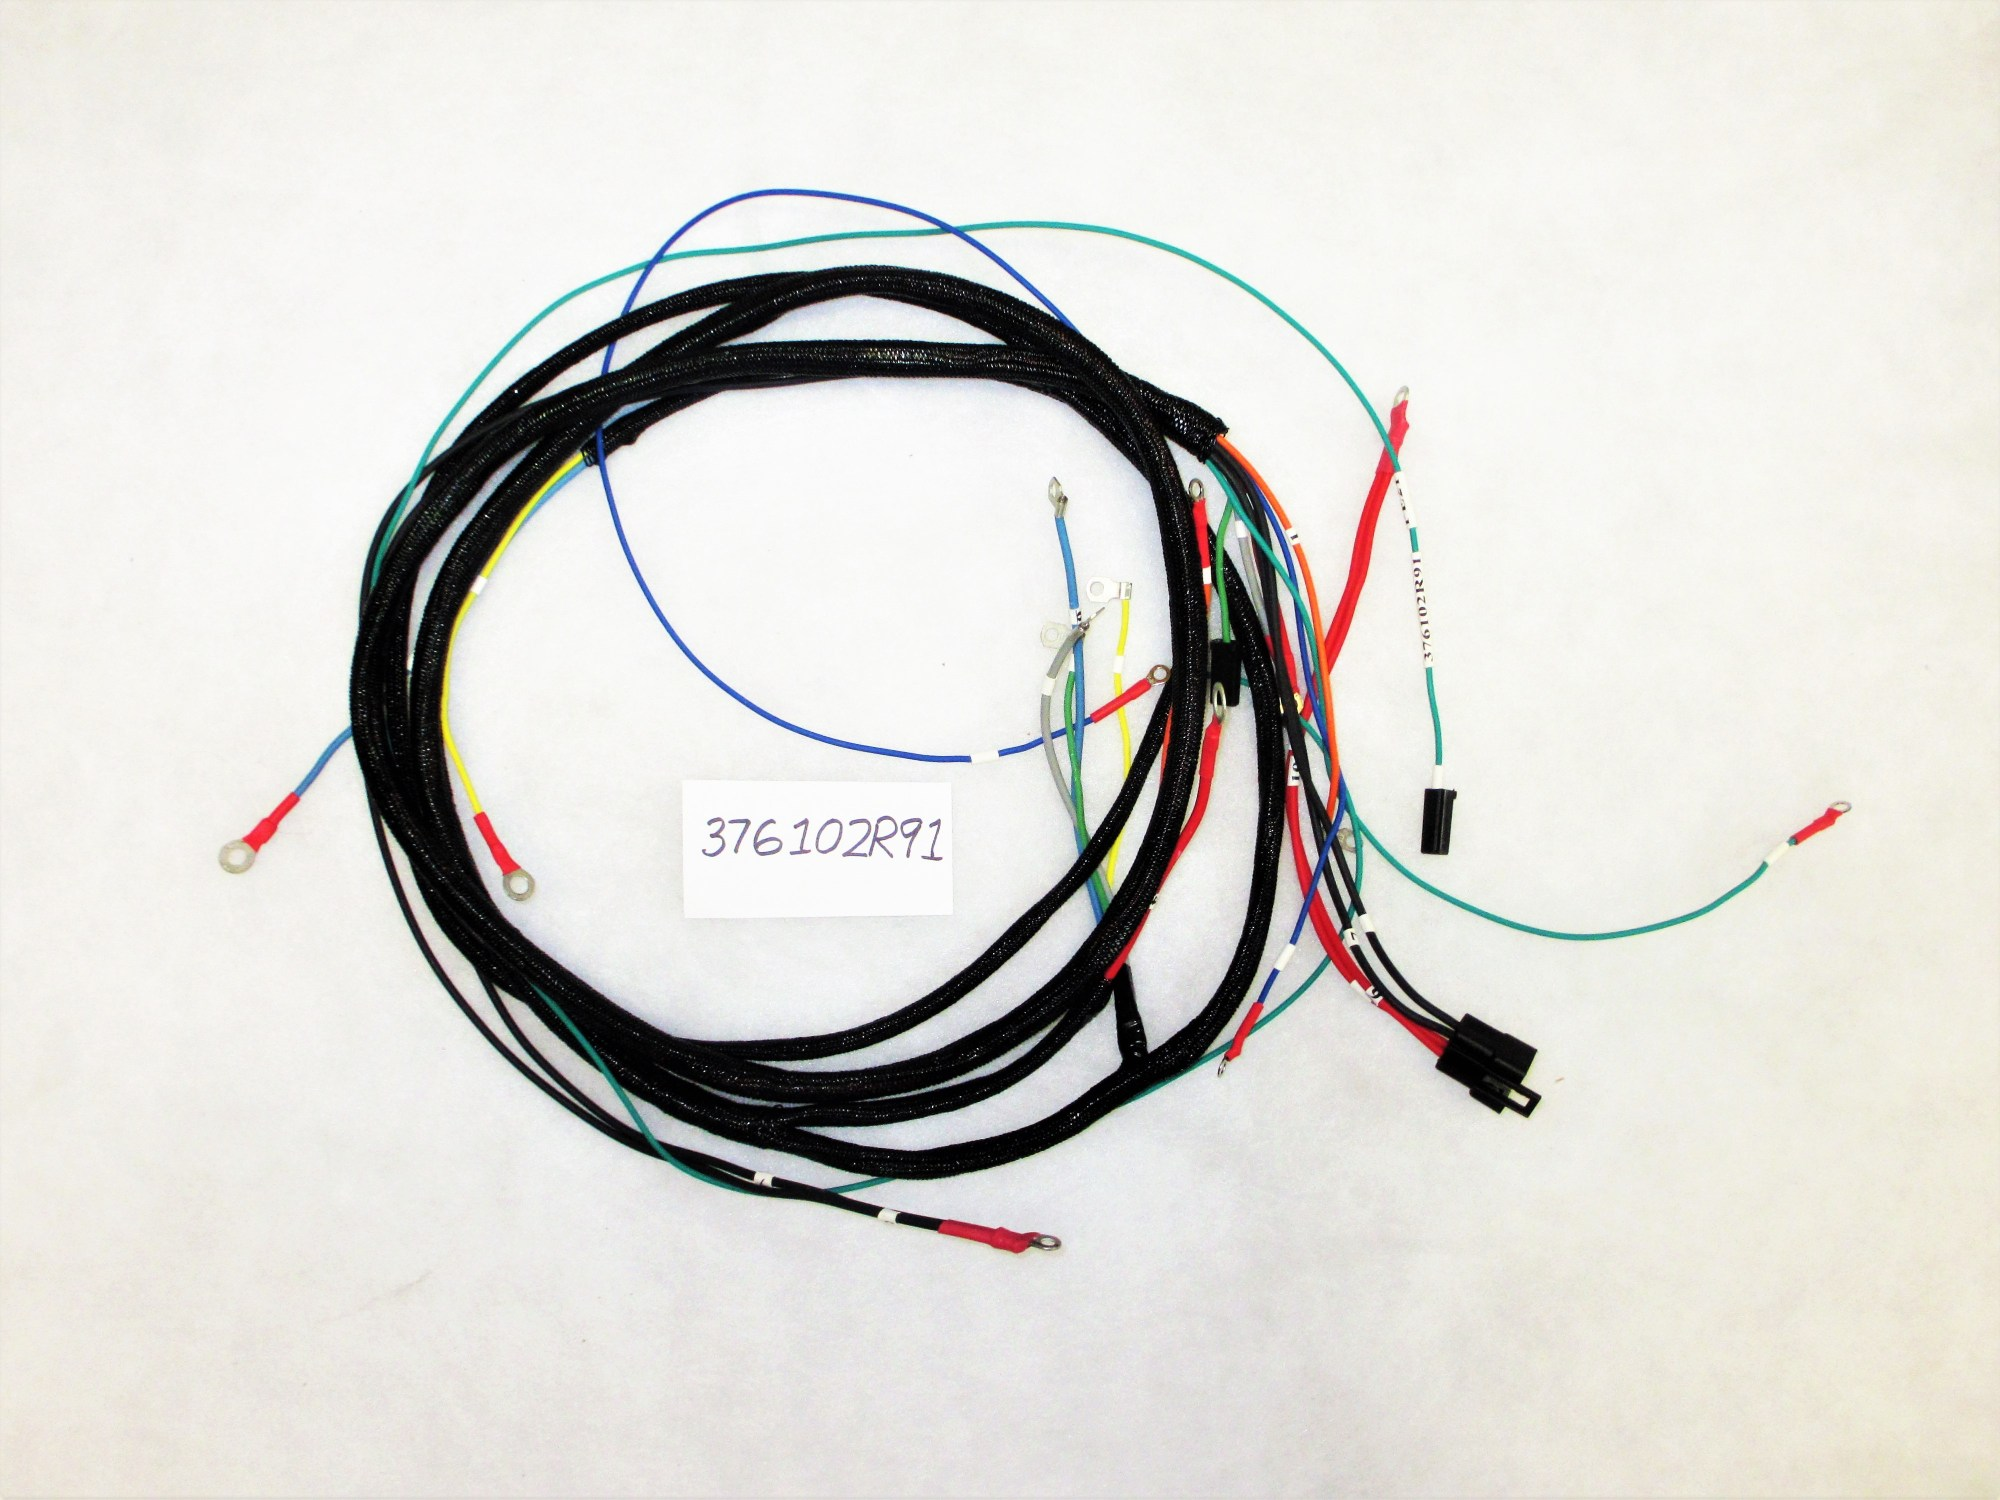 hight resolution of porch electric examples porch electric wiring harness porch electric wiring harness